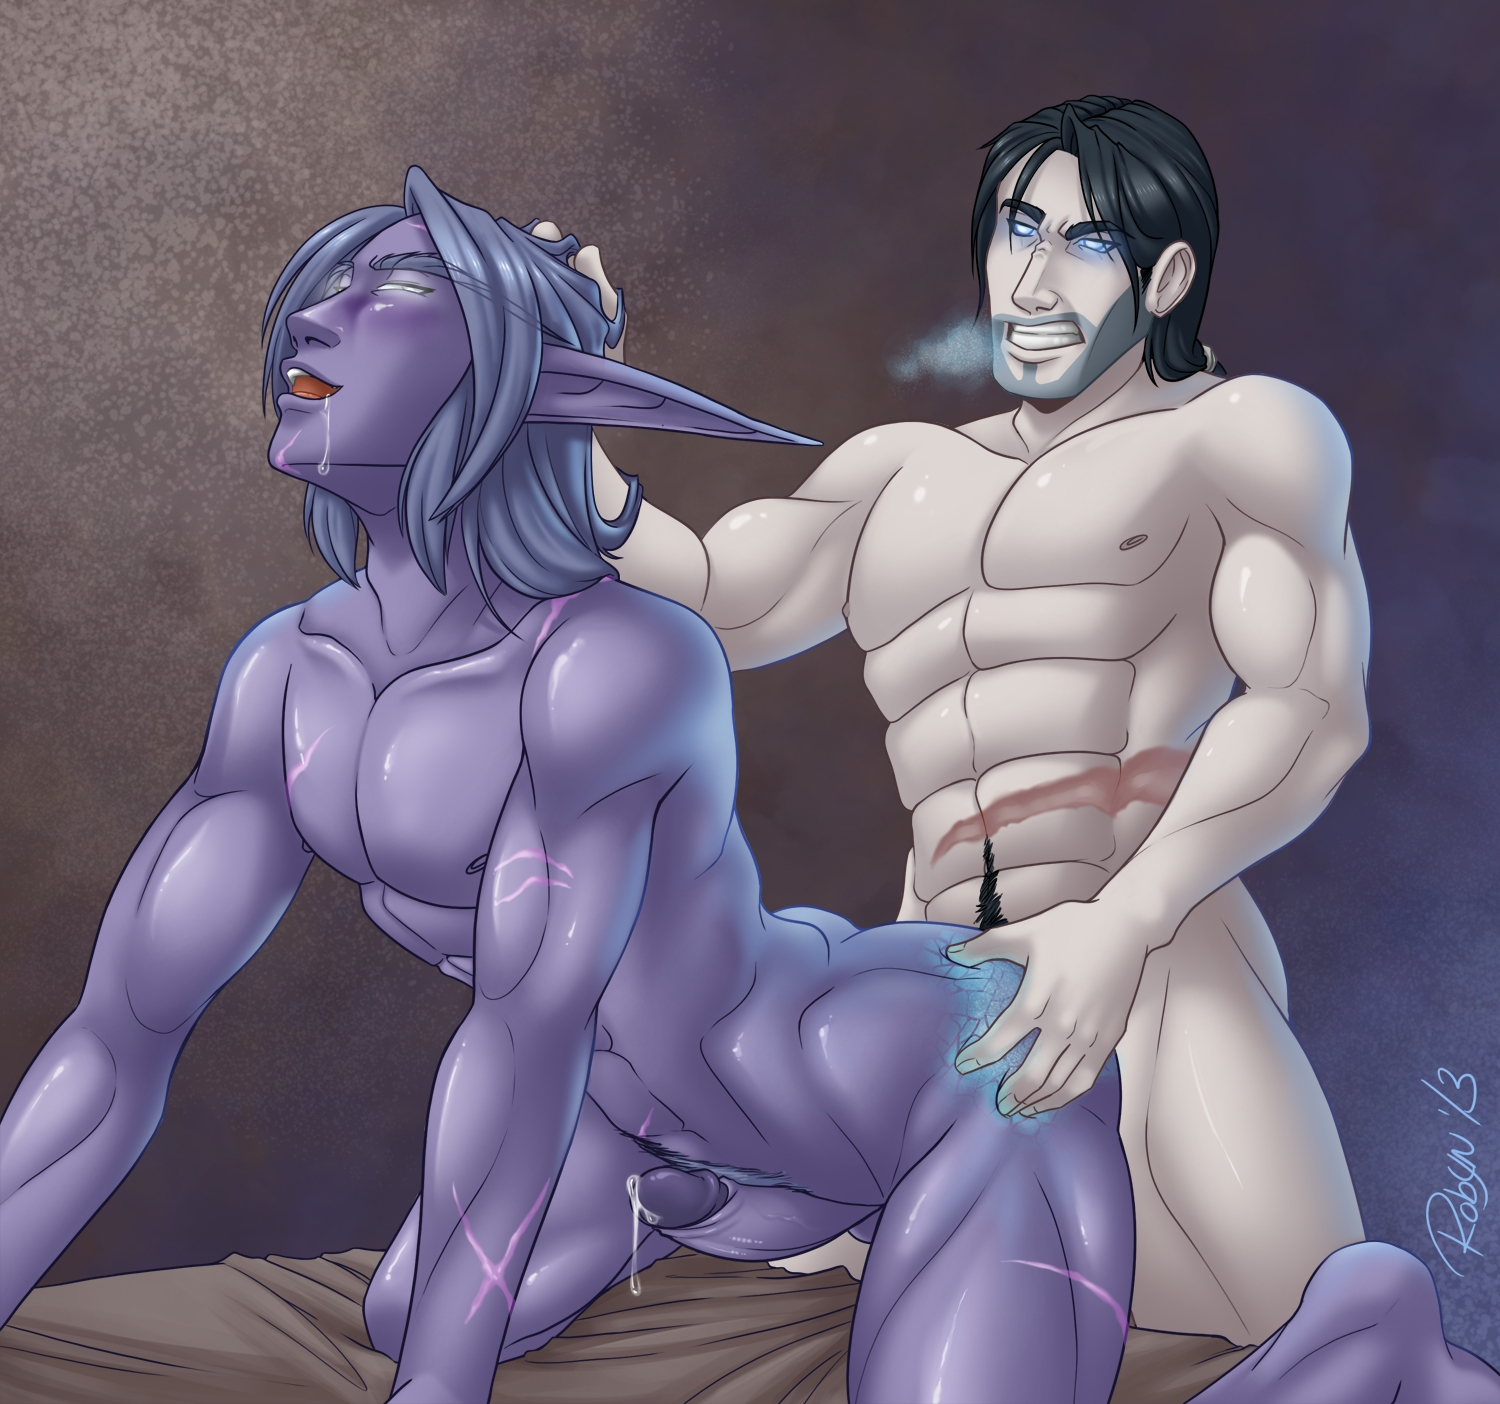 Gay world of warcraft porn pics sexual image